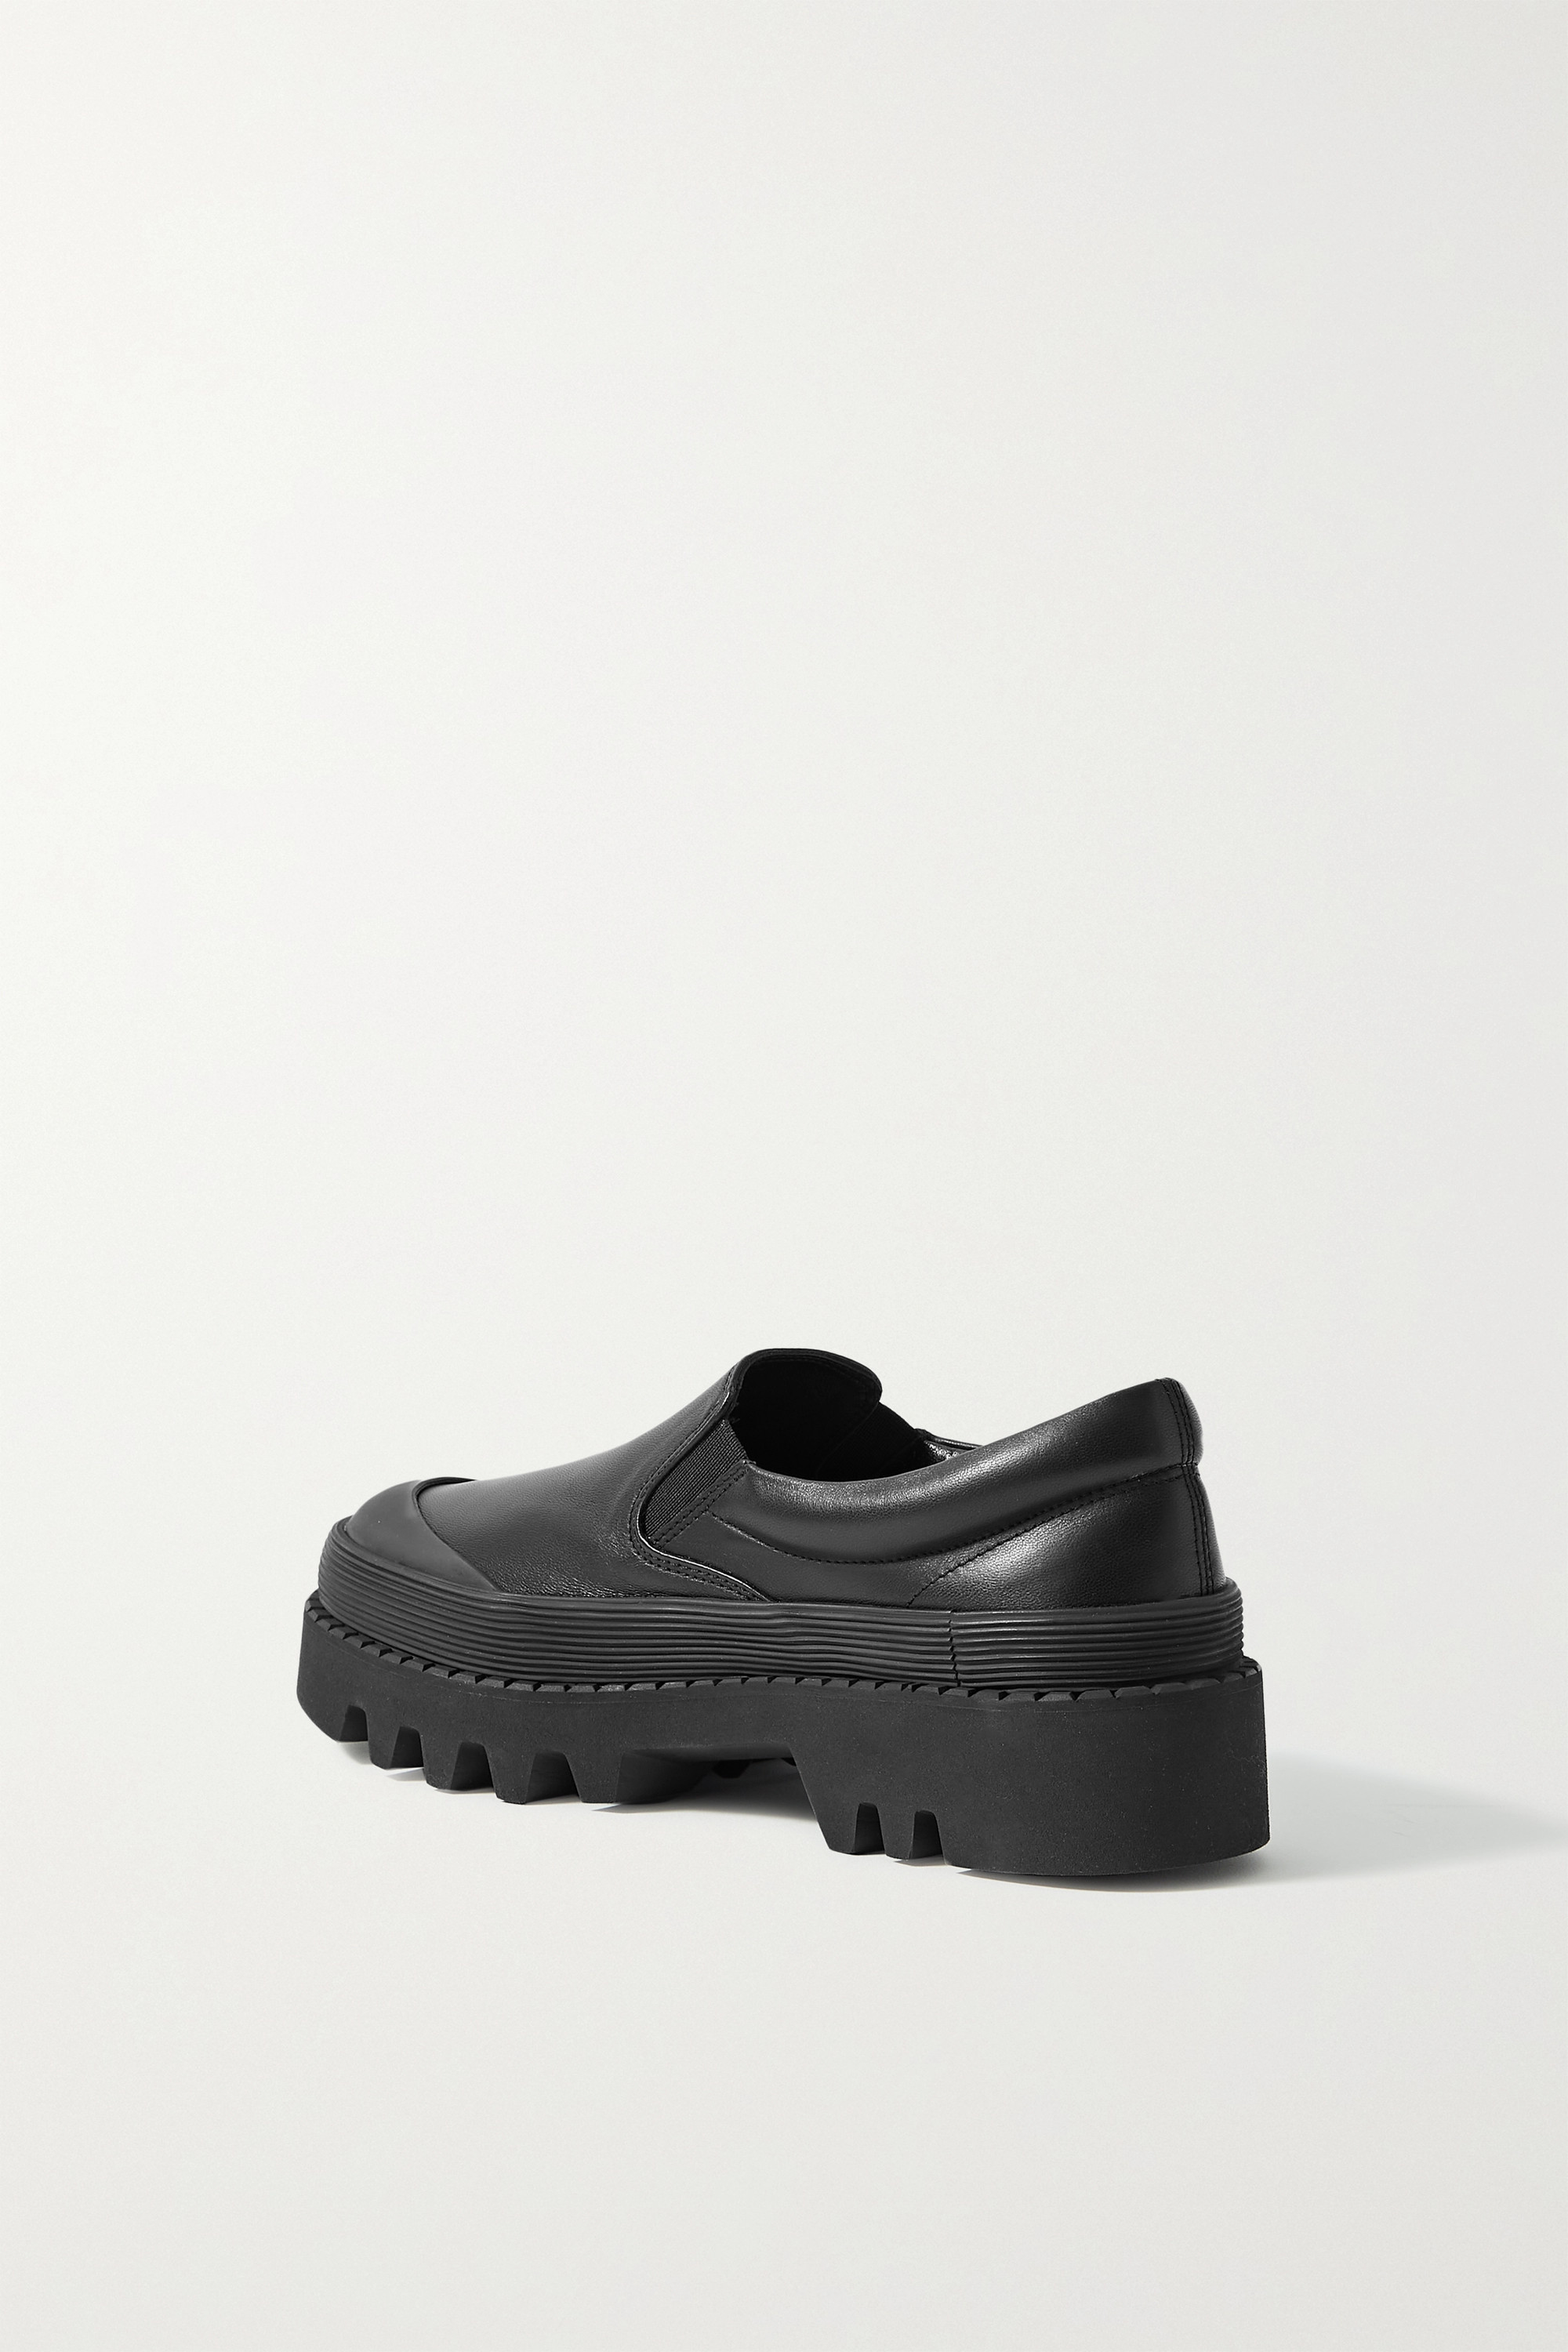 Proenza Schouler City rubber-trimmed leather loafers